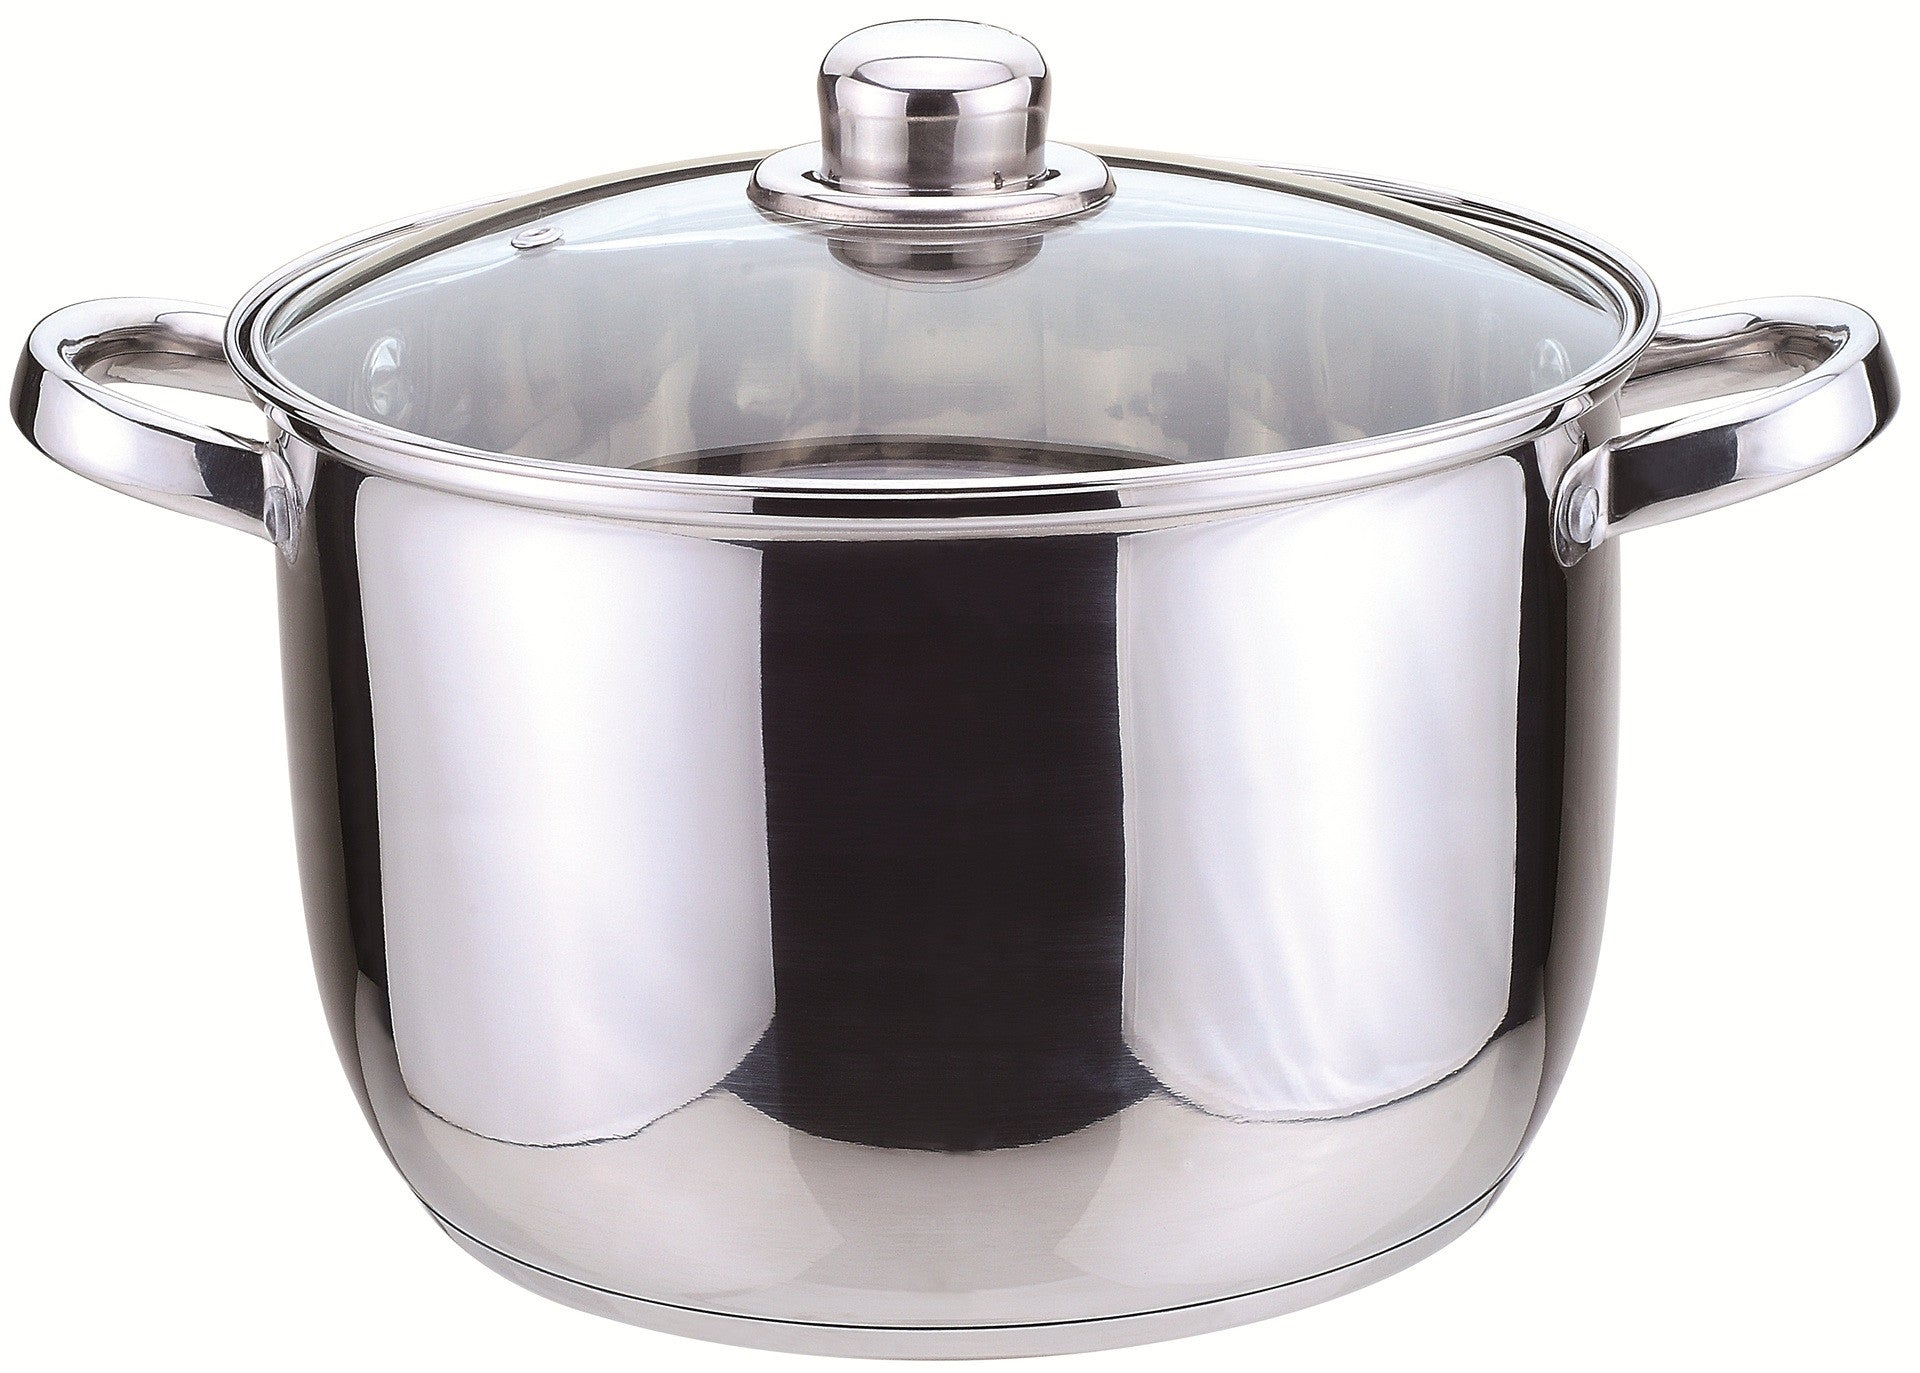 Sabichi 24Cm Essential Stockpot With Glass Lid-93790 - Homely Nigeria